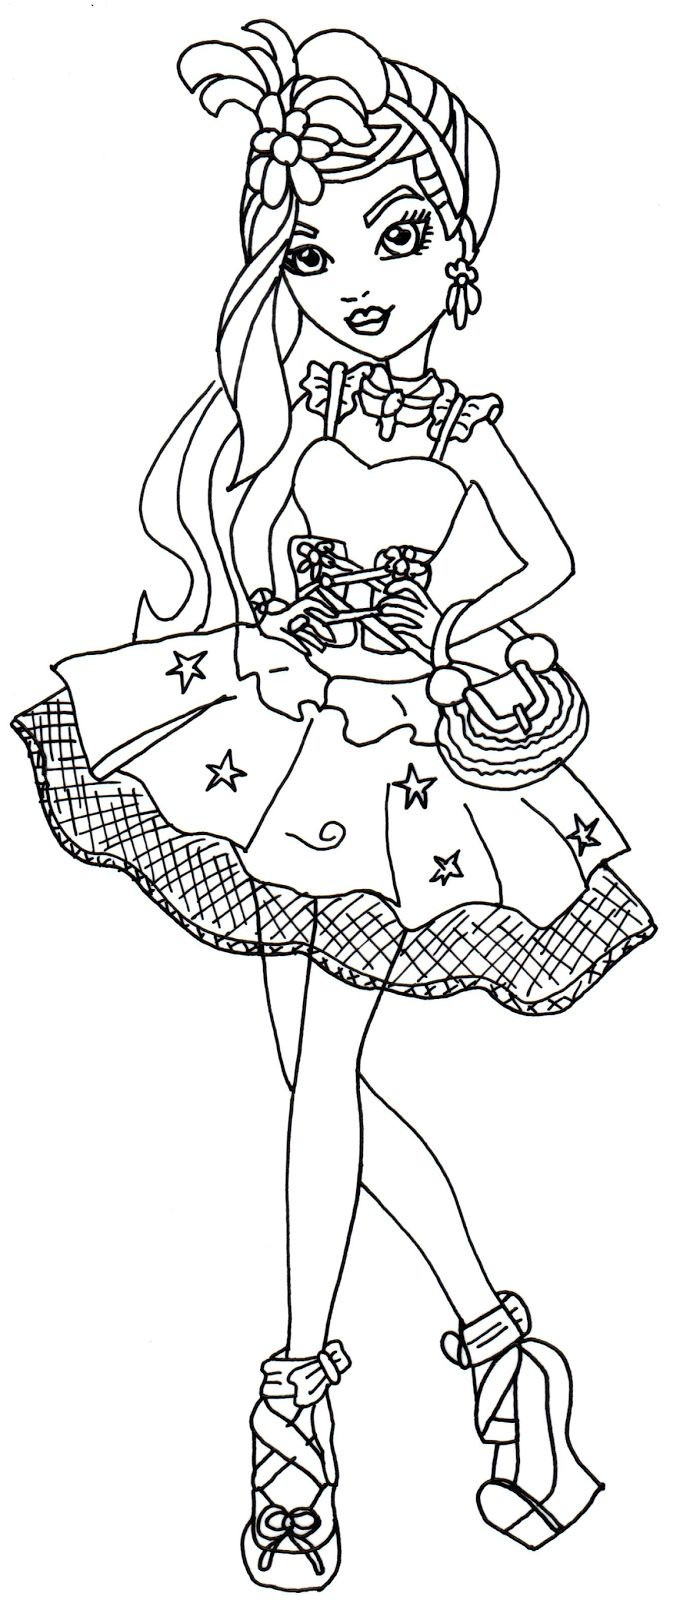 Monster High Ausmalbilder Einzigartig Monster High Ausmalbilder Lagoona Blue Frisch Coloring Pages Monster Galerie